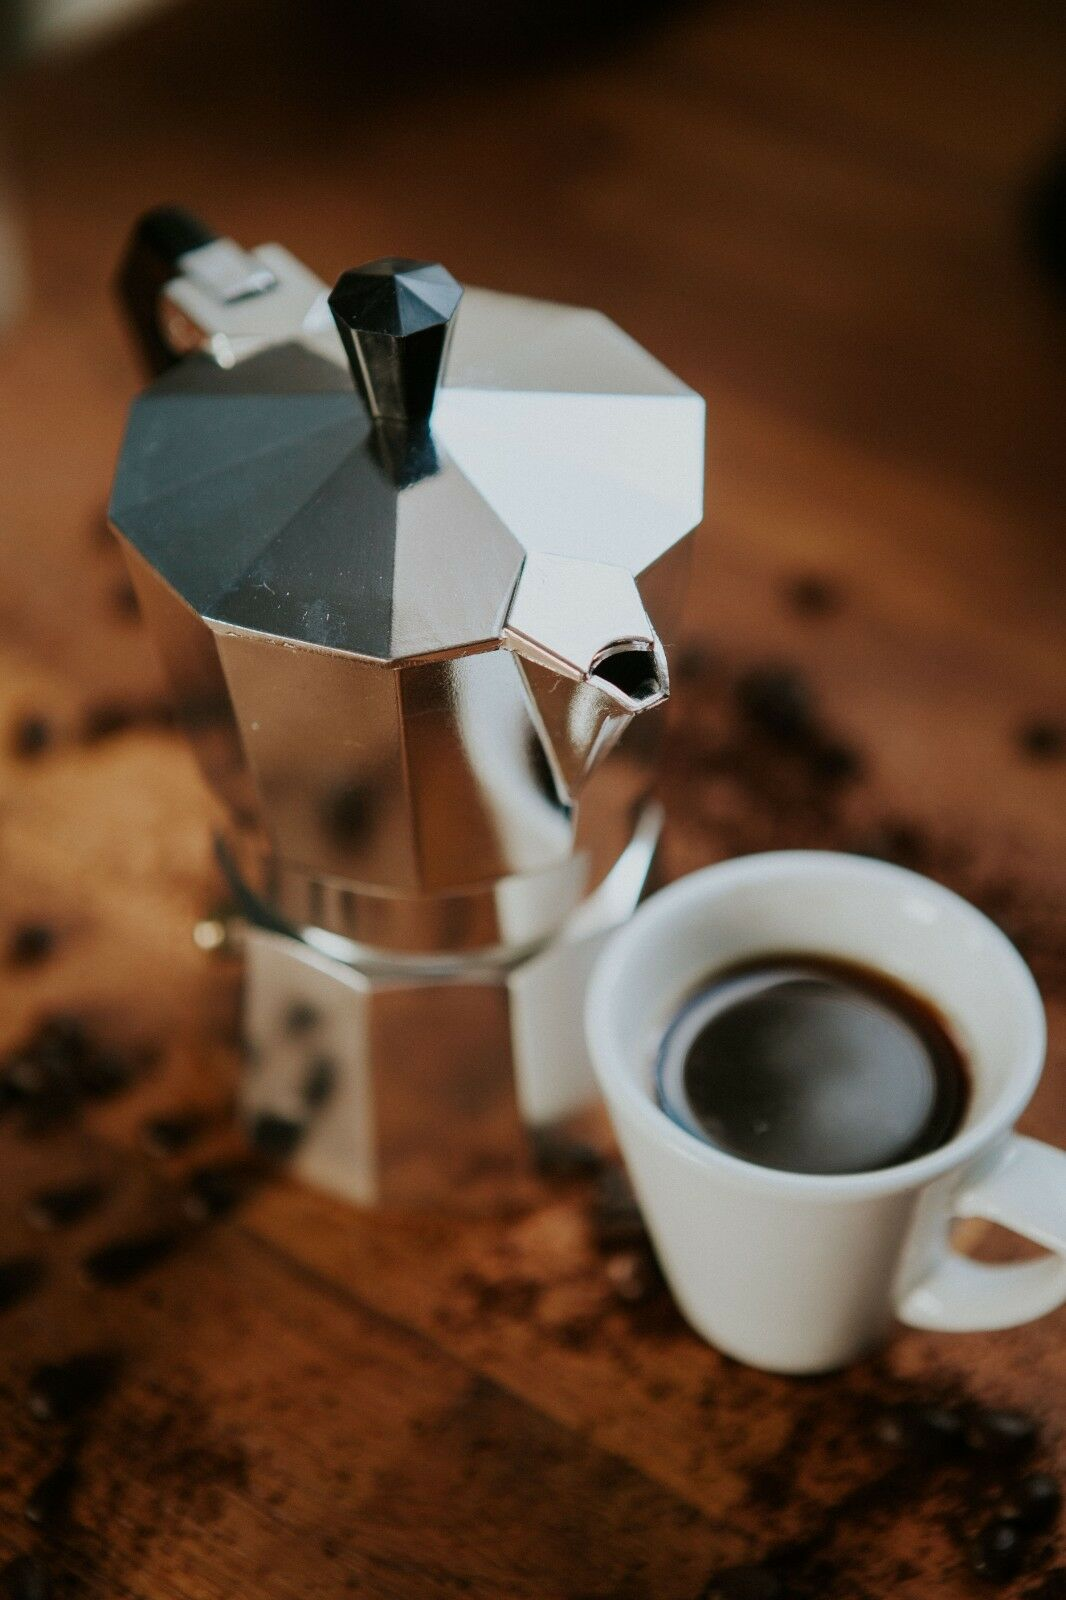 Harga Bialetti Kitty Nera Espresso Maker 10 Cups Silver Termurah Machine Mokona Coffee Pot Moka Classic Italian Stove 1 Of